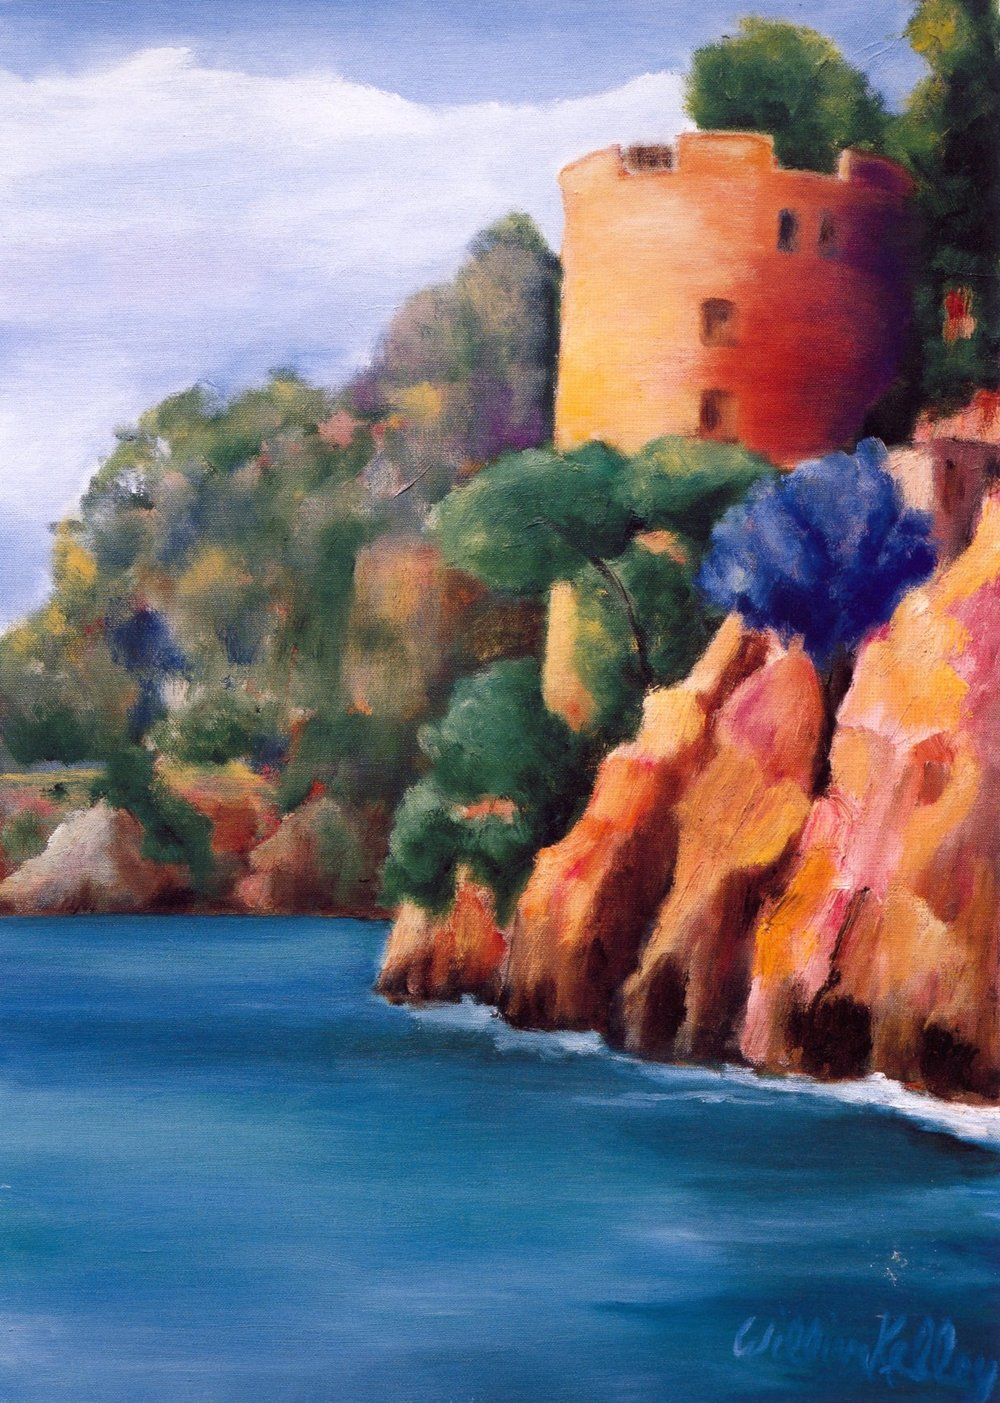 Il Castello, Positano   Oil on canvas, 24'' x 32'', 2004